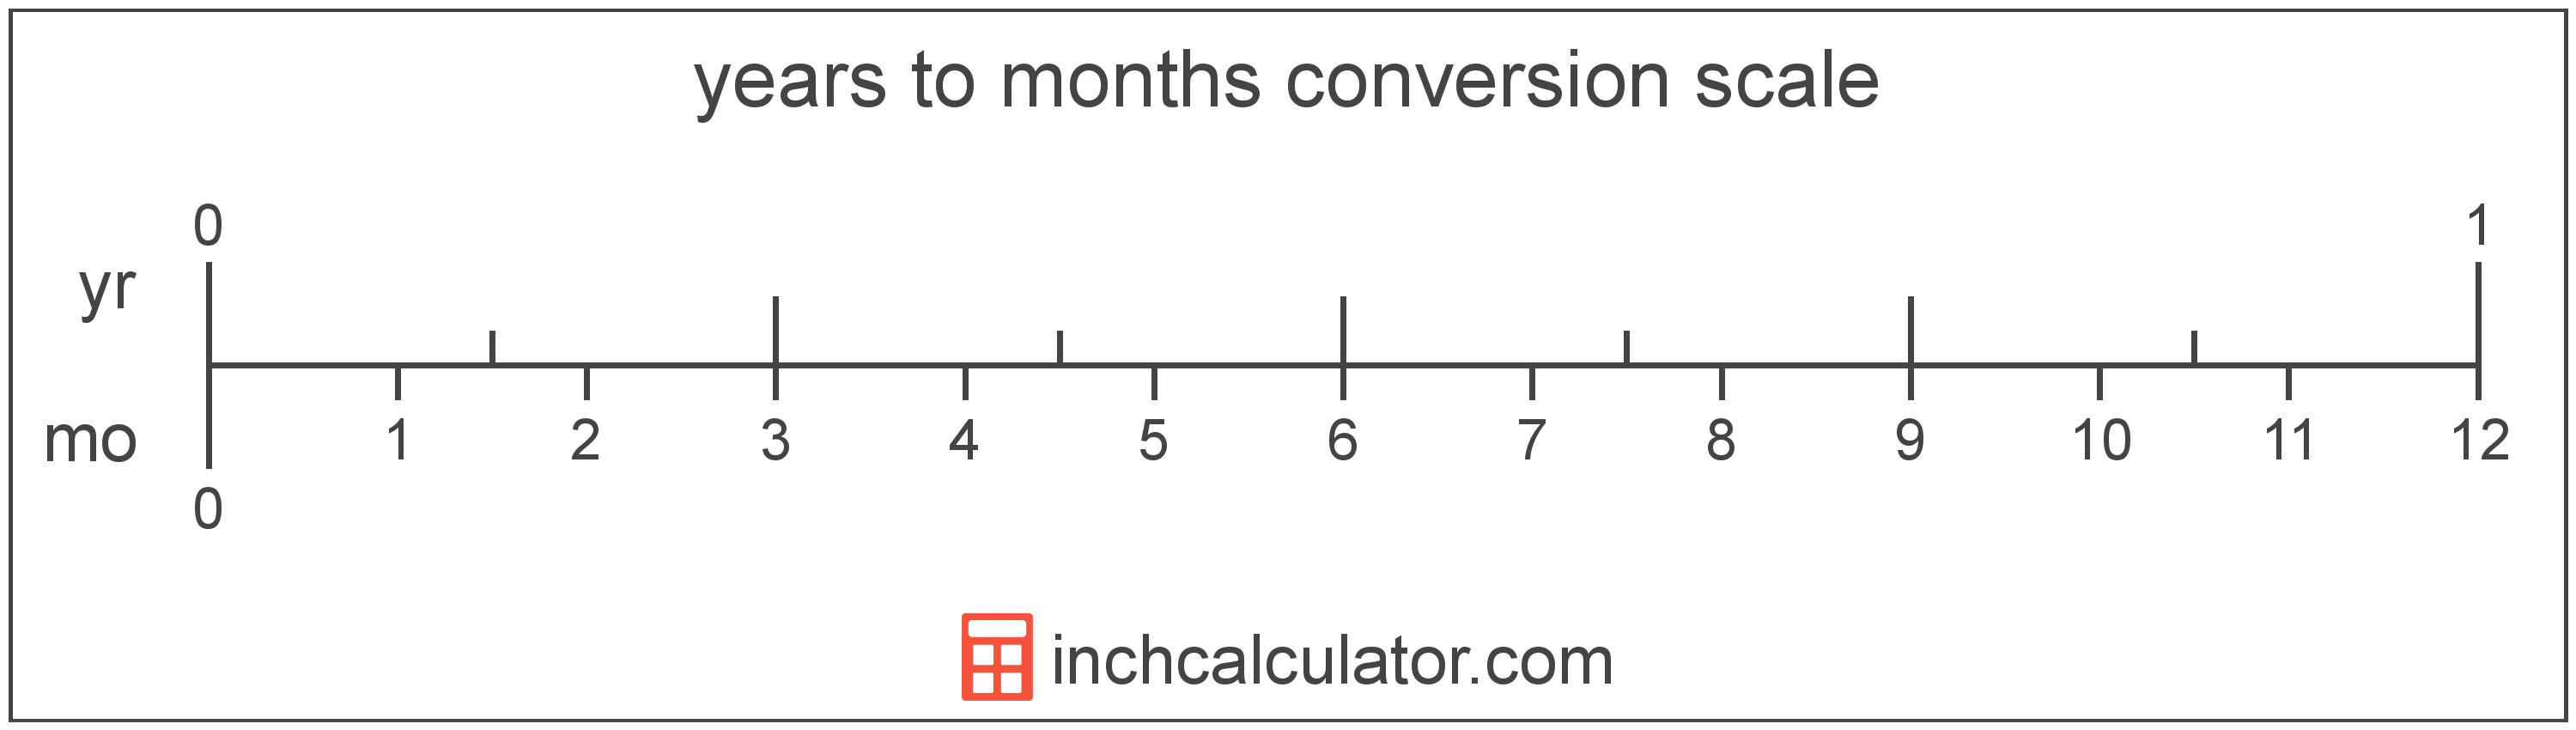 conversion scale showing months and equivalent years time values